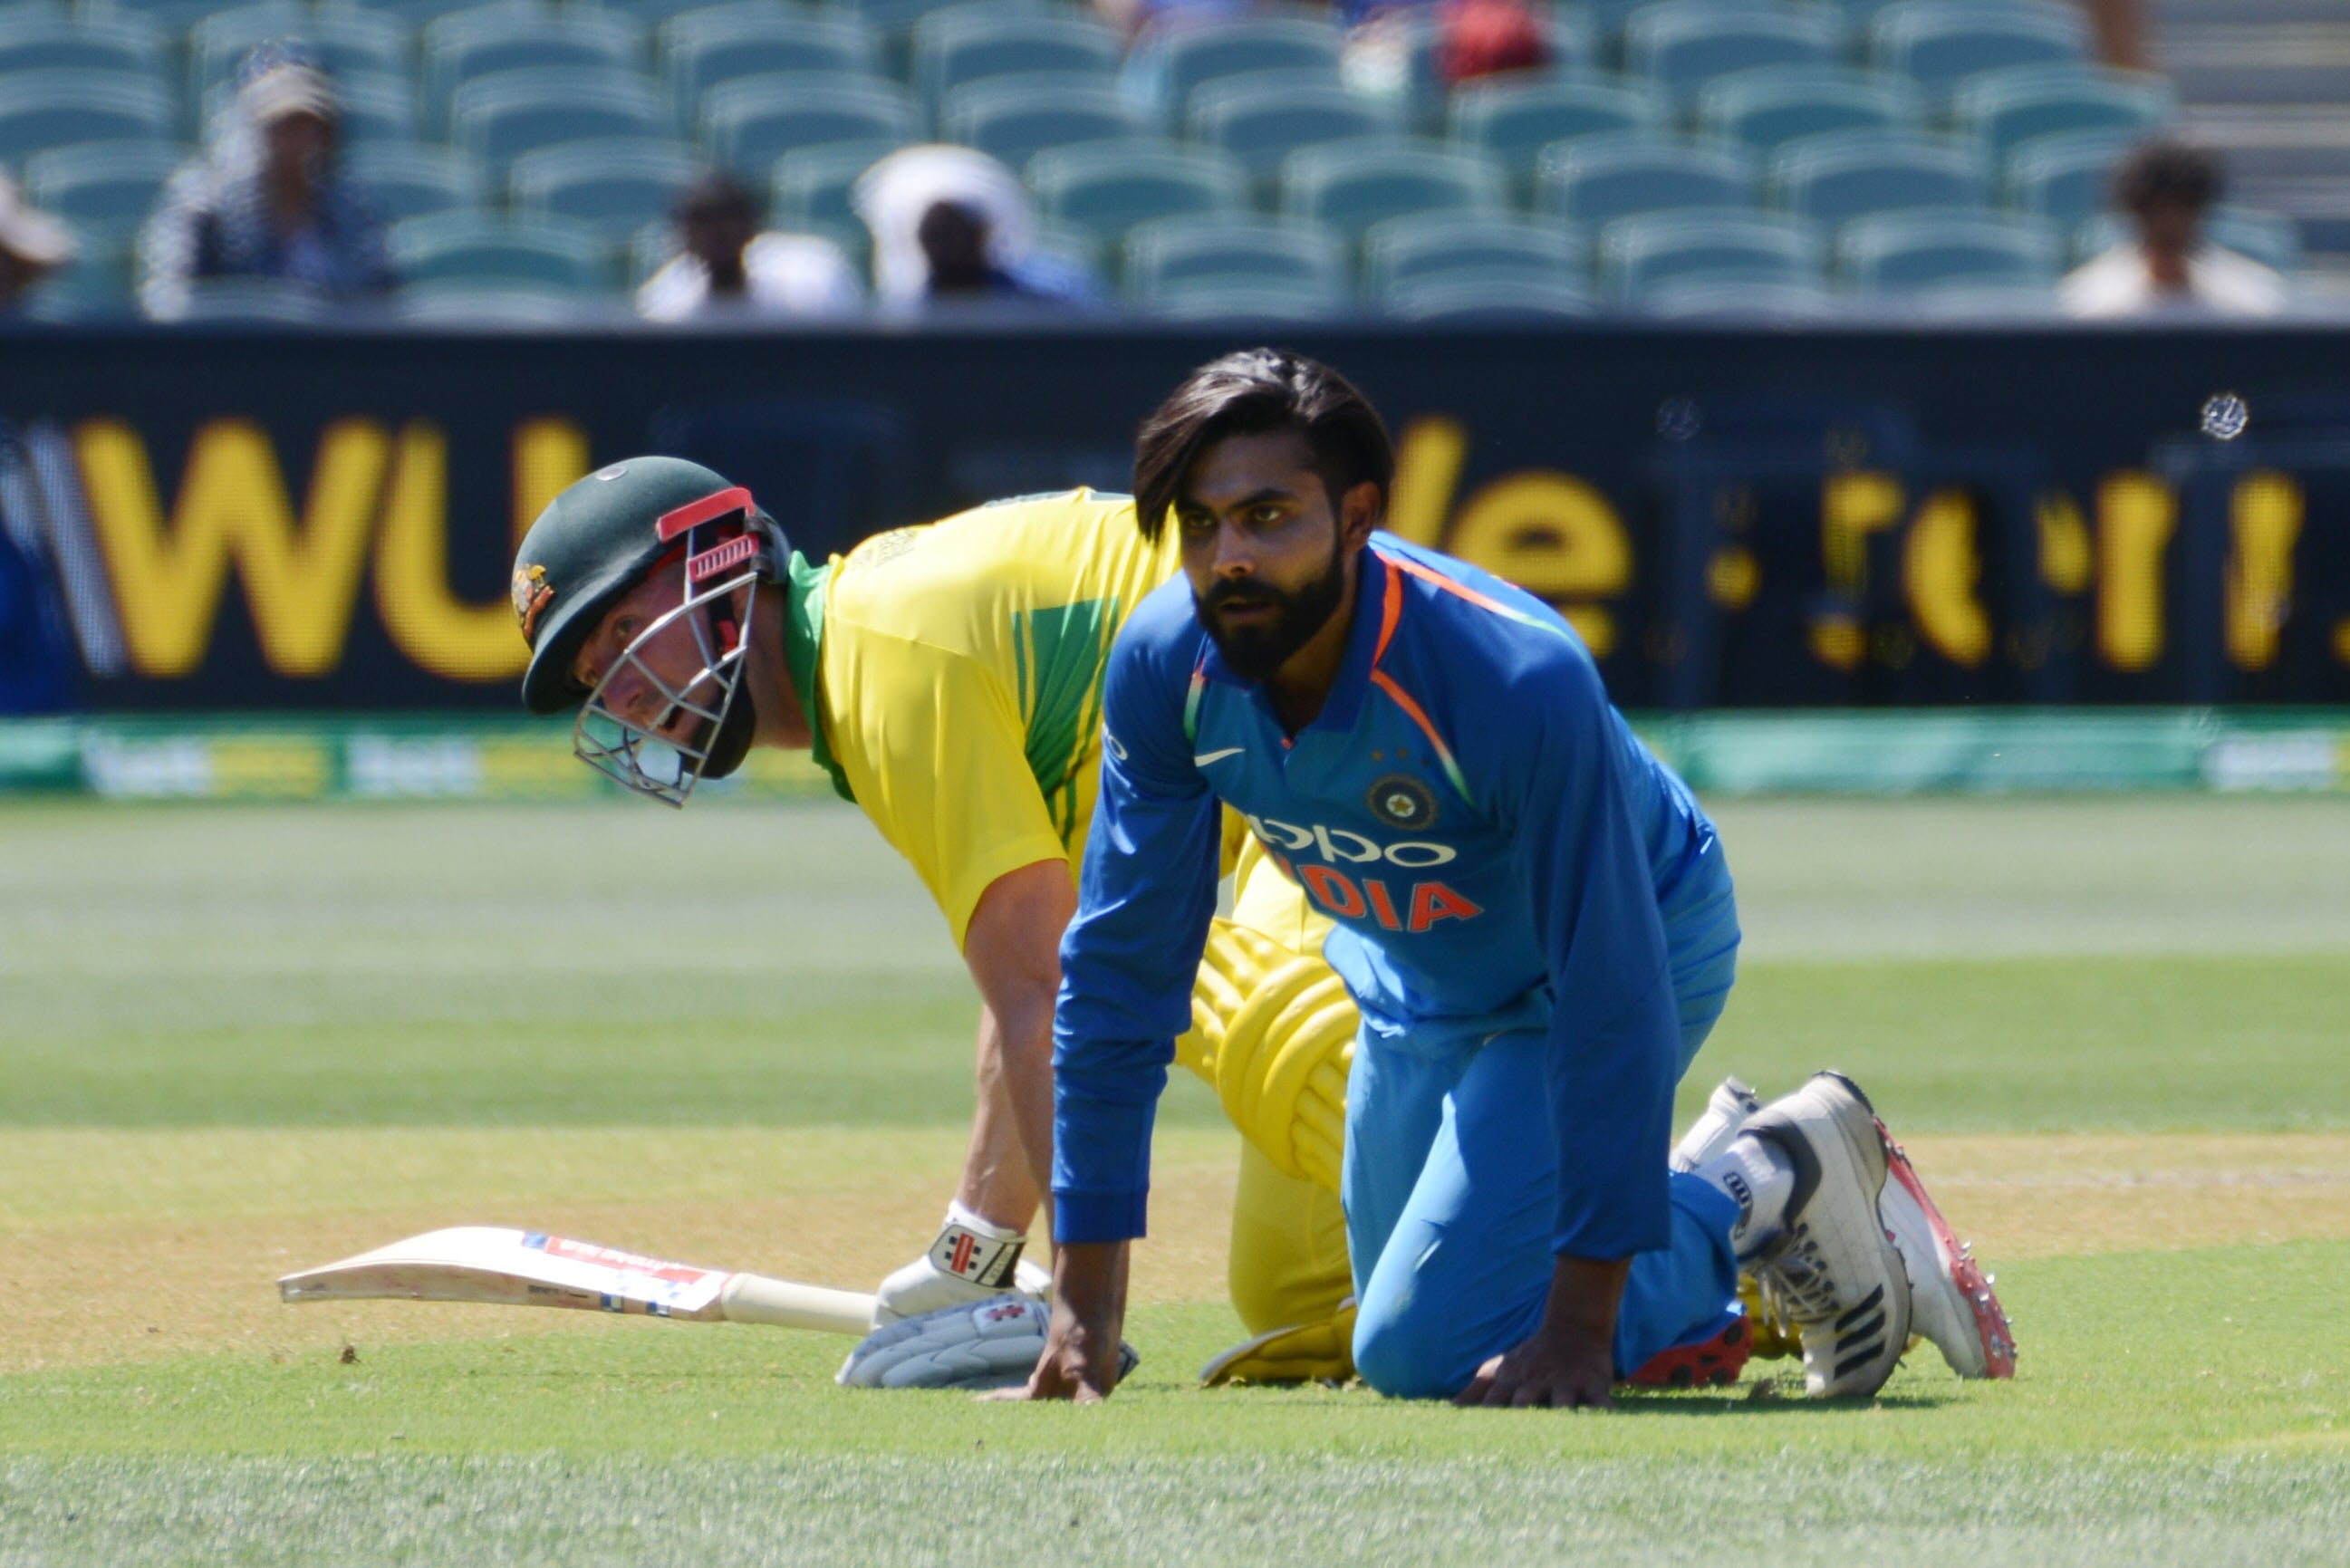 Australia vs India - Second ODI in Adelaide